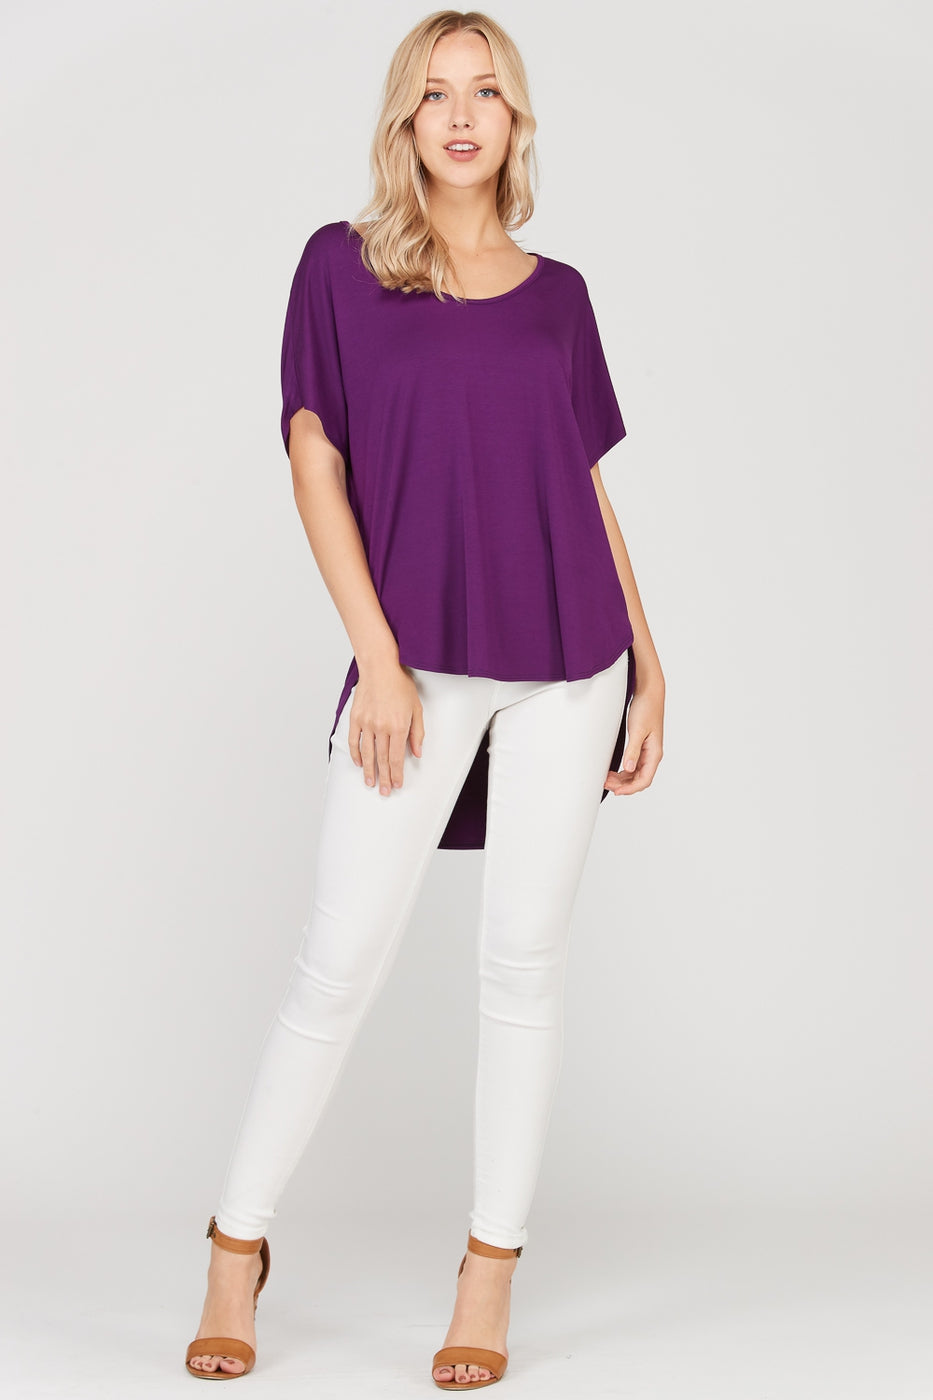 Plum Short Sleeve T-Shirt Loose Fit With Round Neck Siin Bees